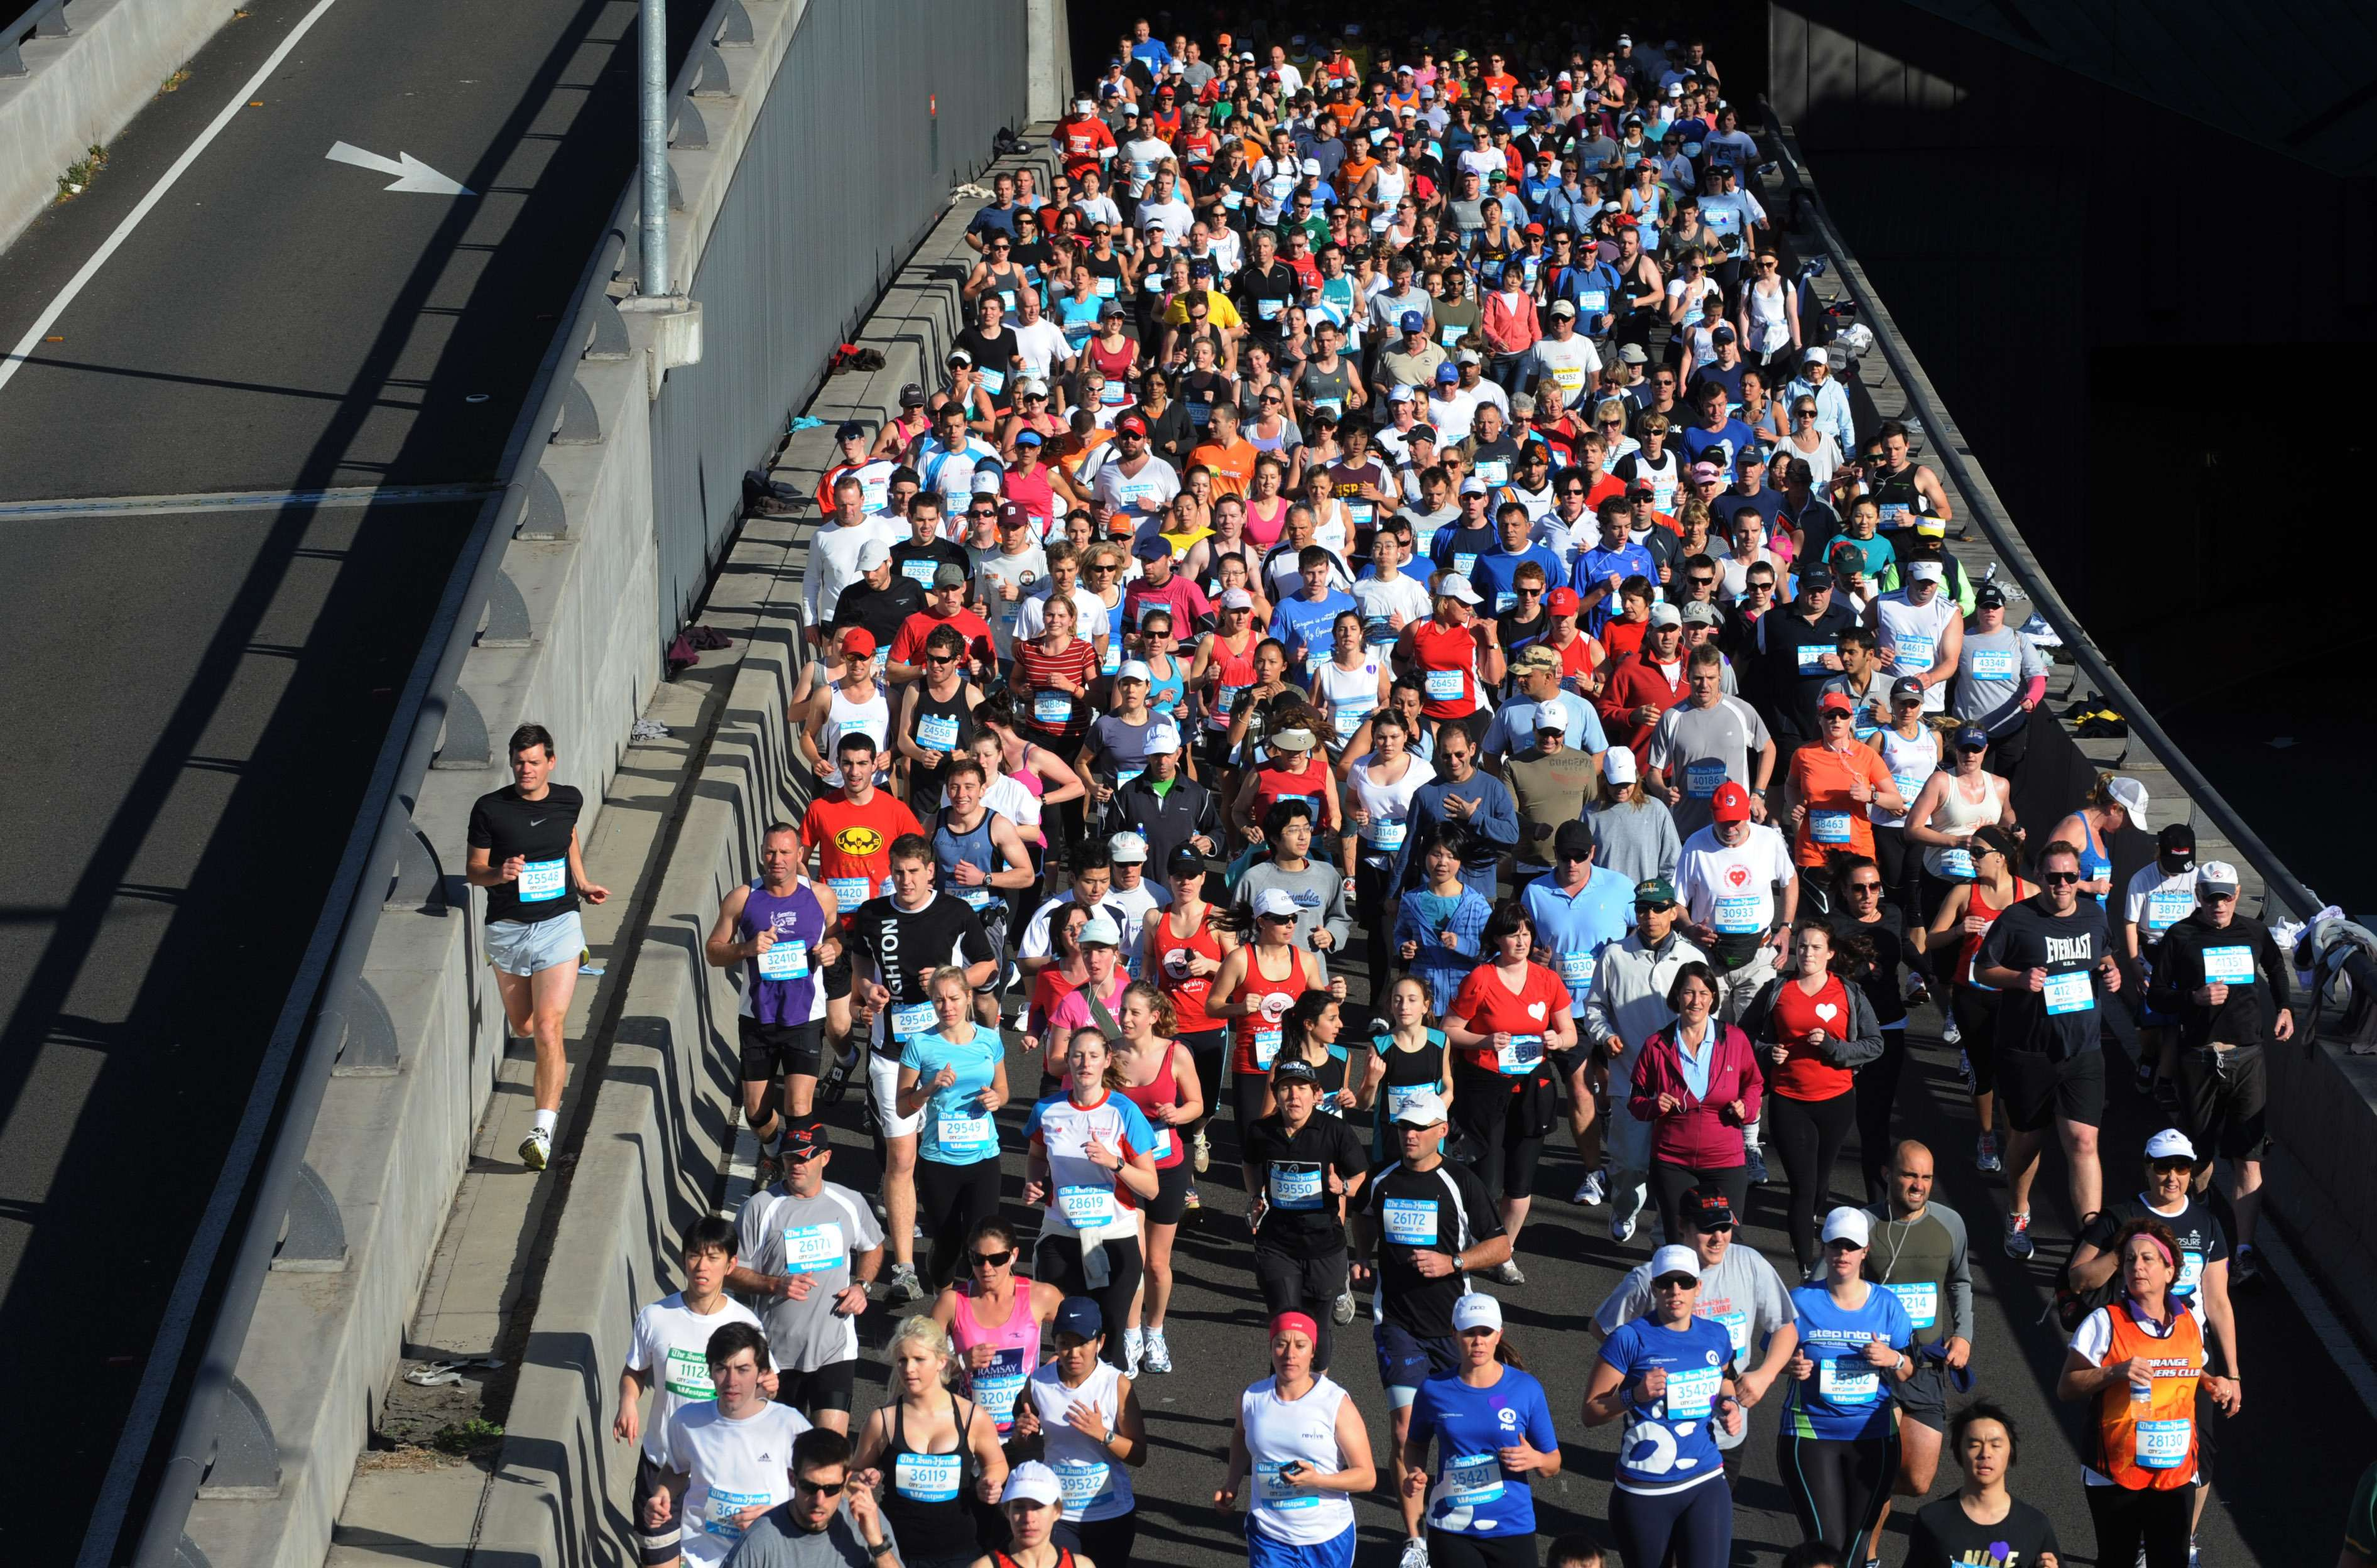 S&M: City 2 Surf – The business of running